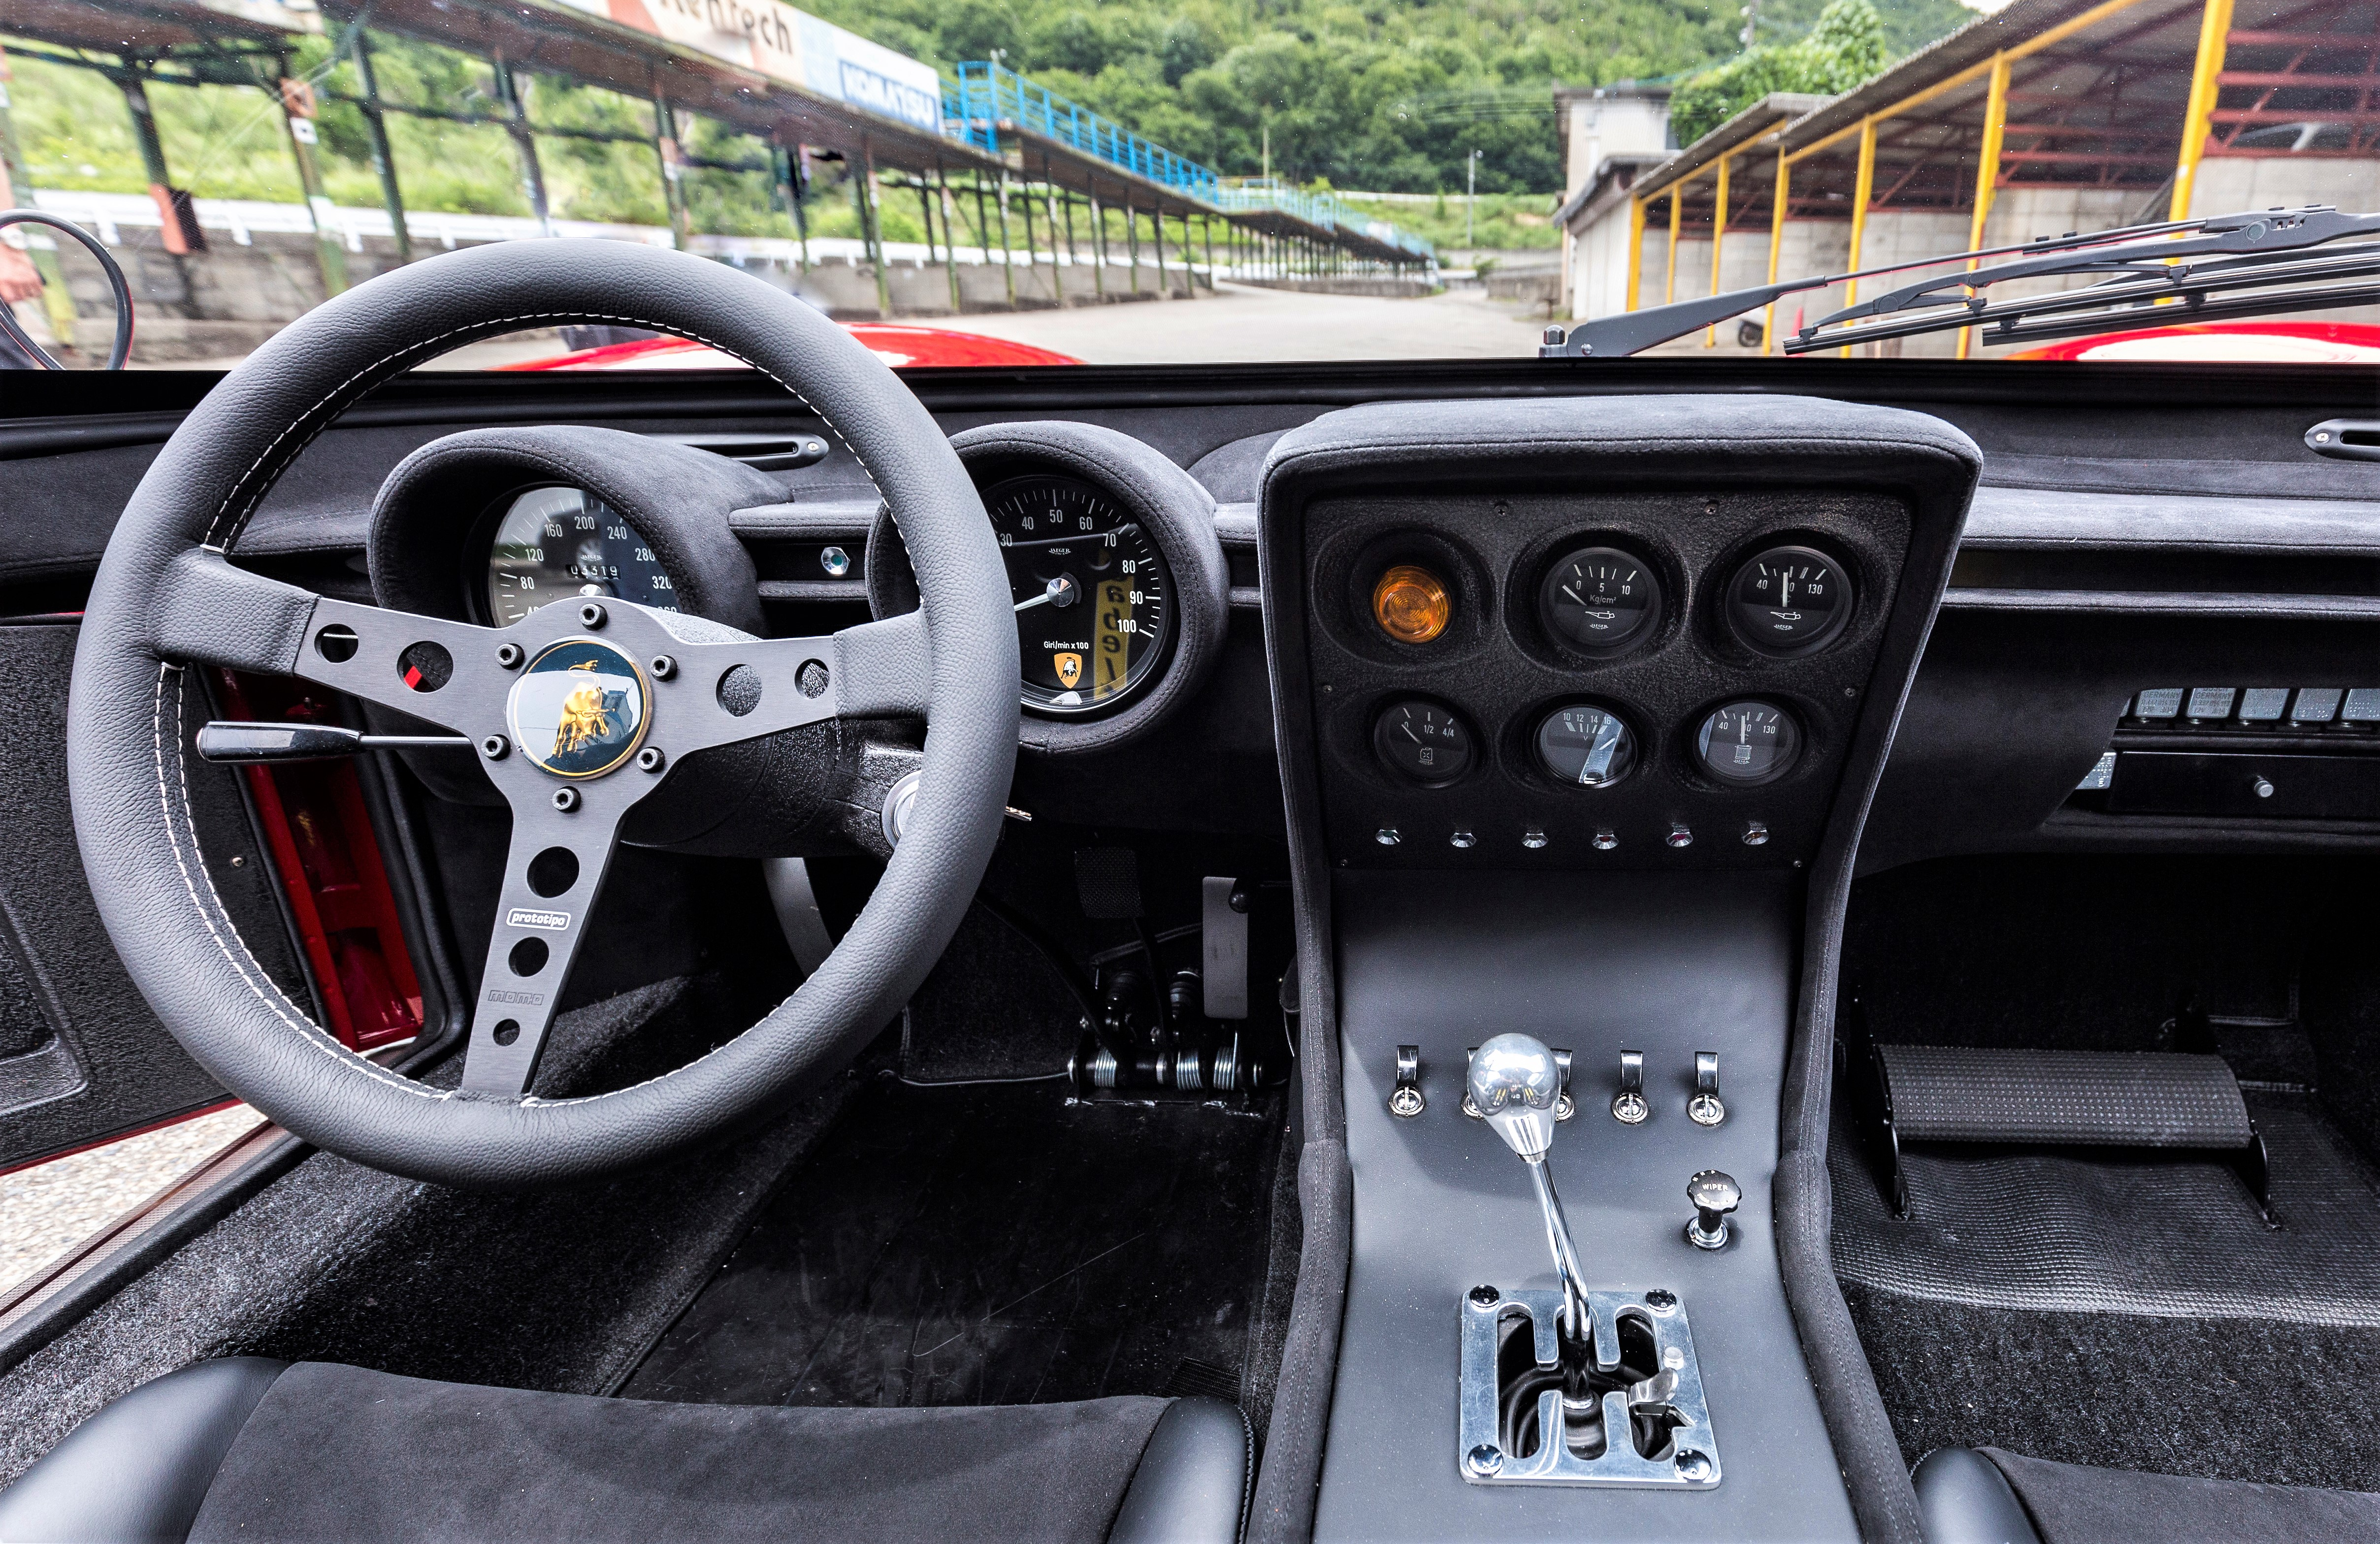 The restored Miura SVR received some safety upgrades